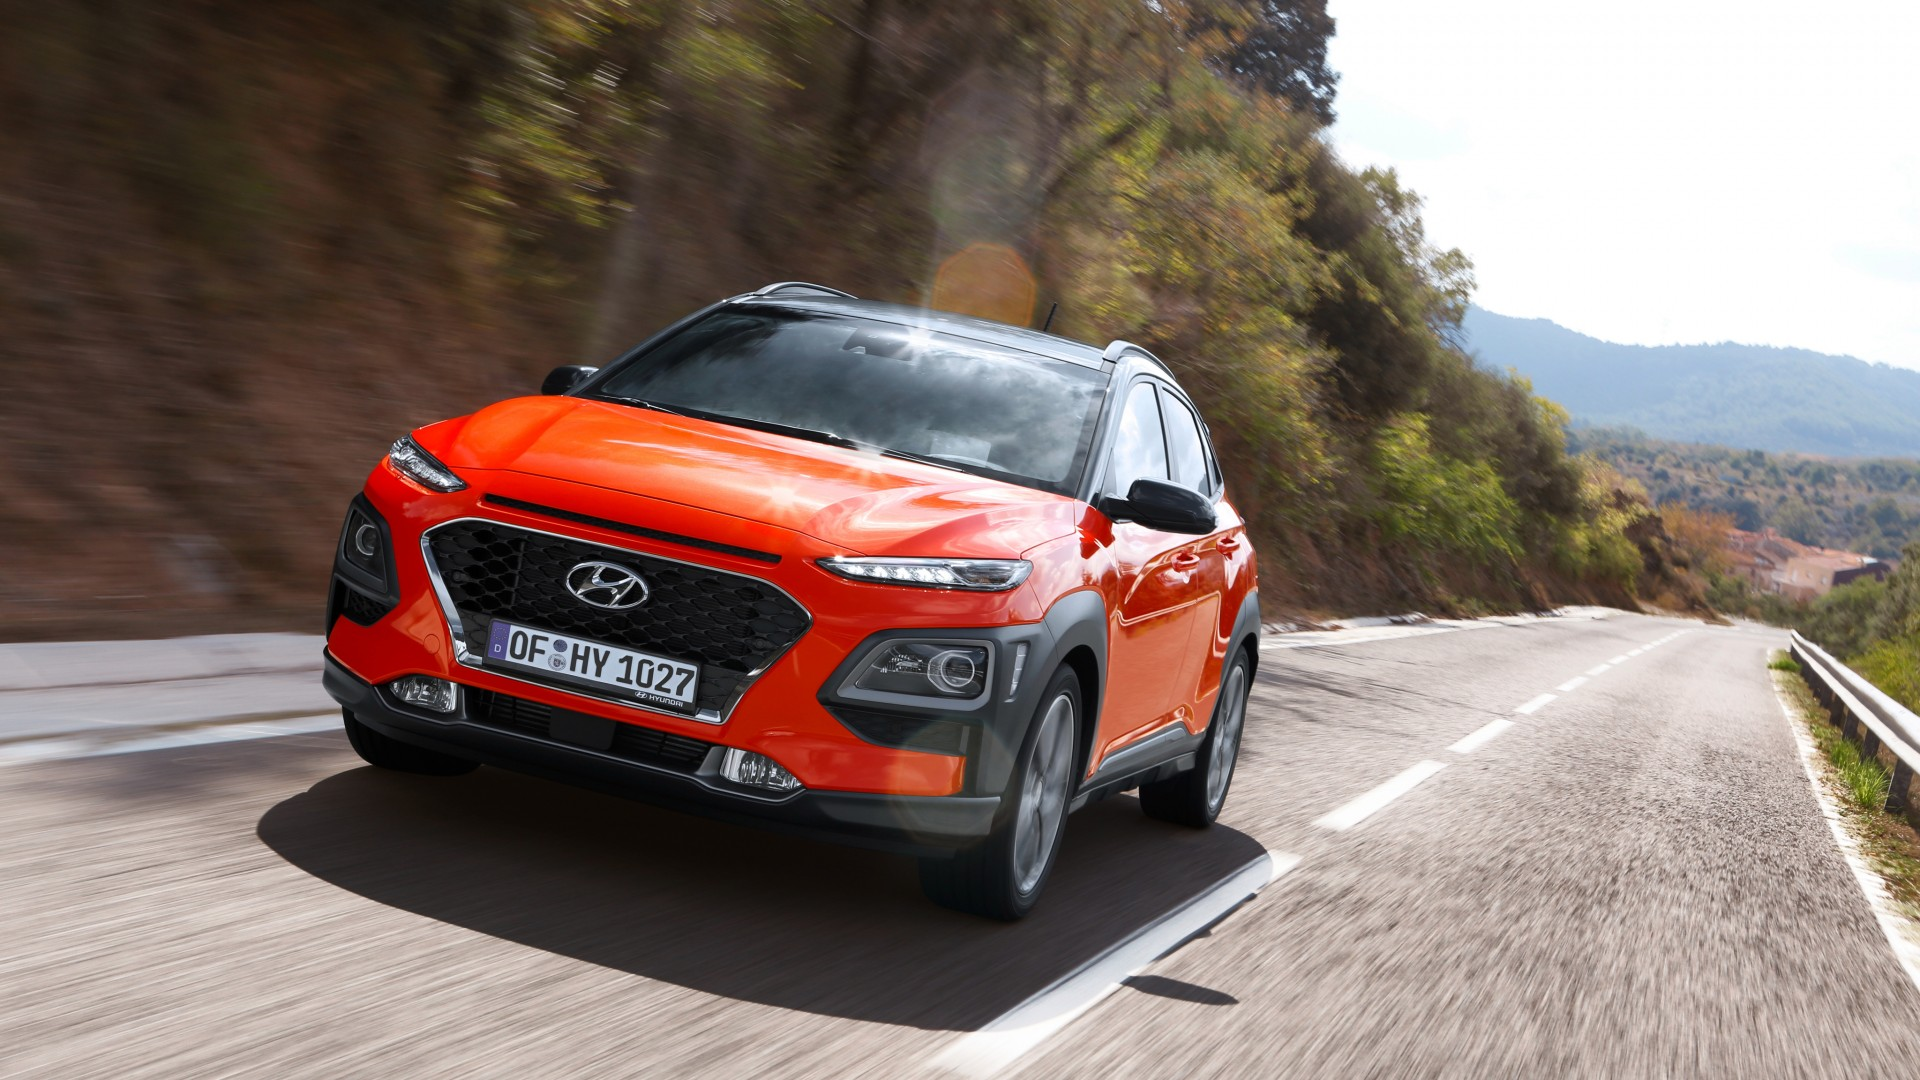 Hd Jaguar Car Wallpaper Download 2018 Hyundai Kona 4k 5 Wallpaper Hd Car Wallpapers Id